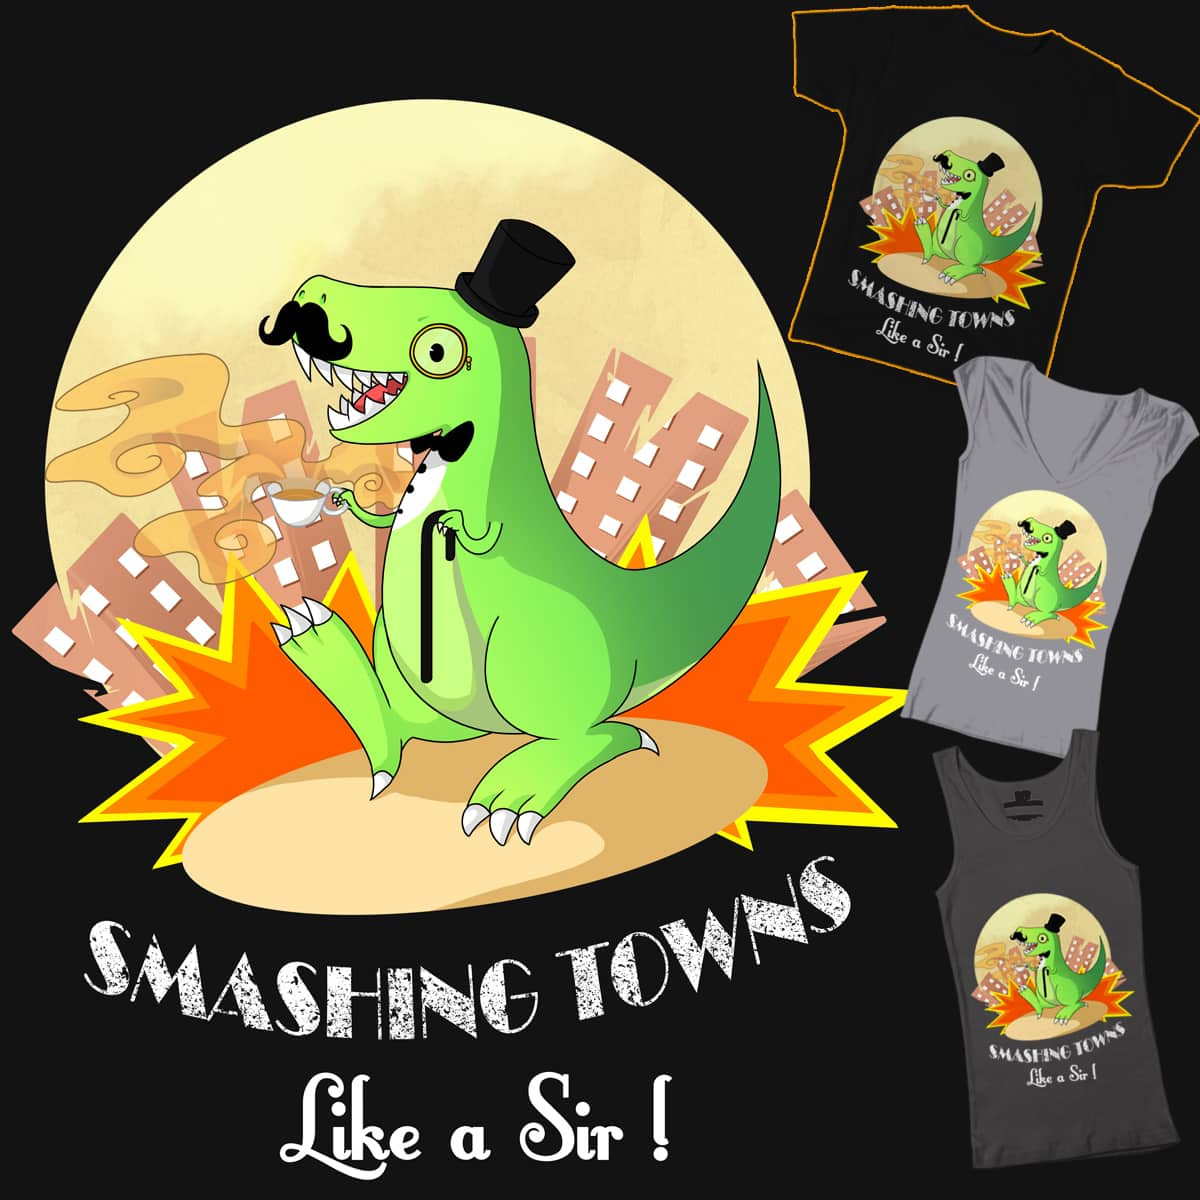 Smashing Towns by WillowSan on Threadless